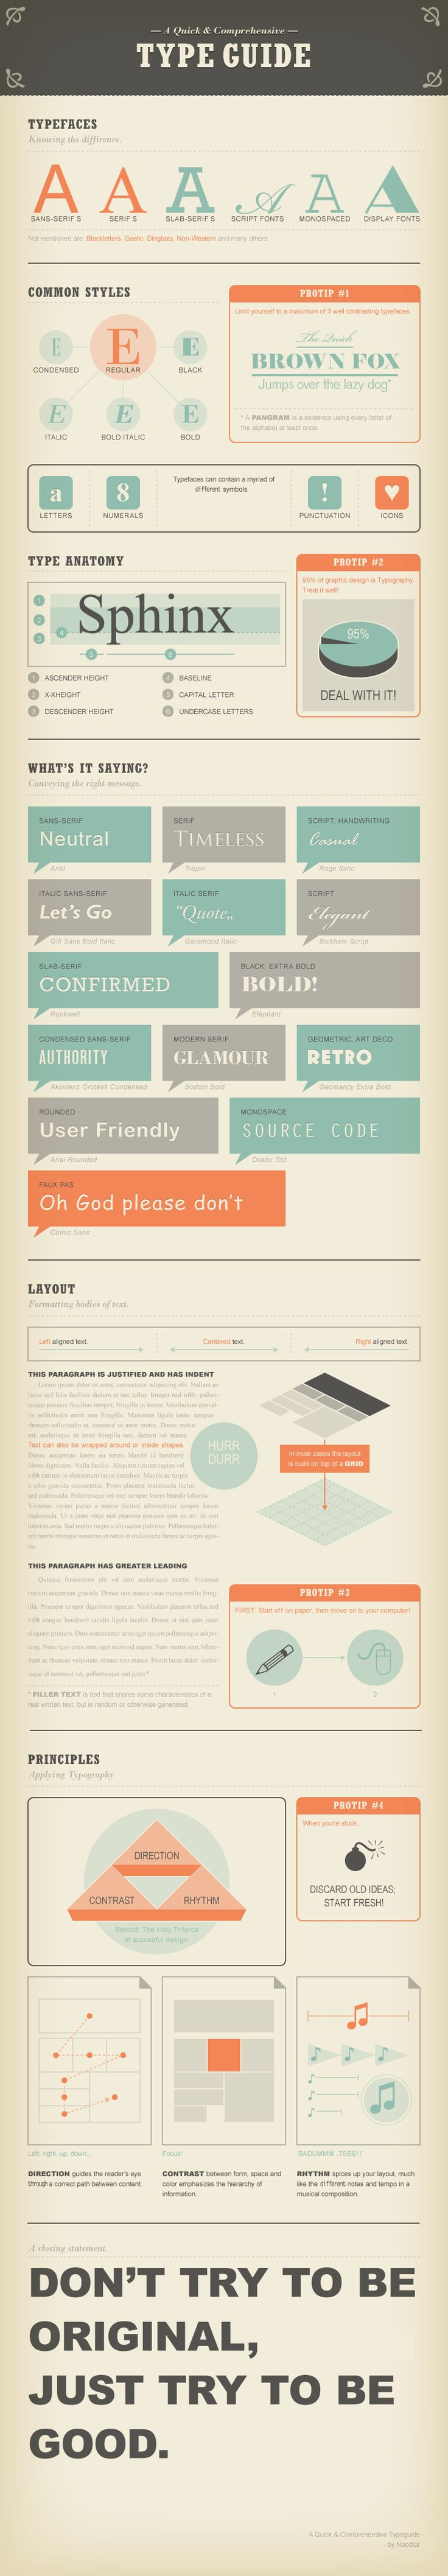 don't try to be original, just try to be good: Typeguide, Graphic Design, Guide Infographic, Graphicdesign, Type Guide, Typography, Infographics, Comprehensive Type